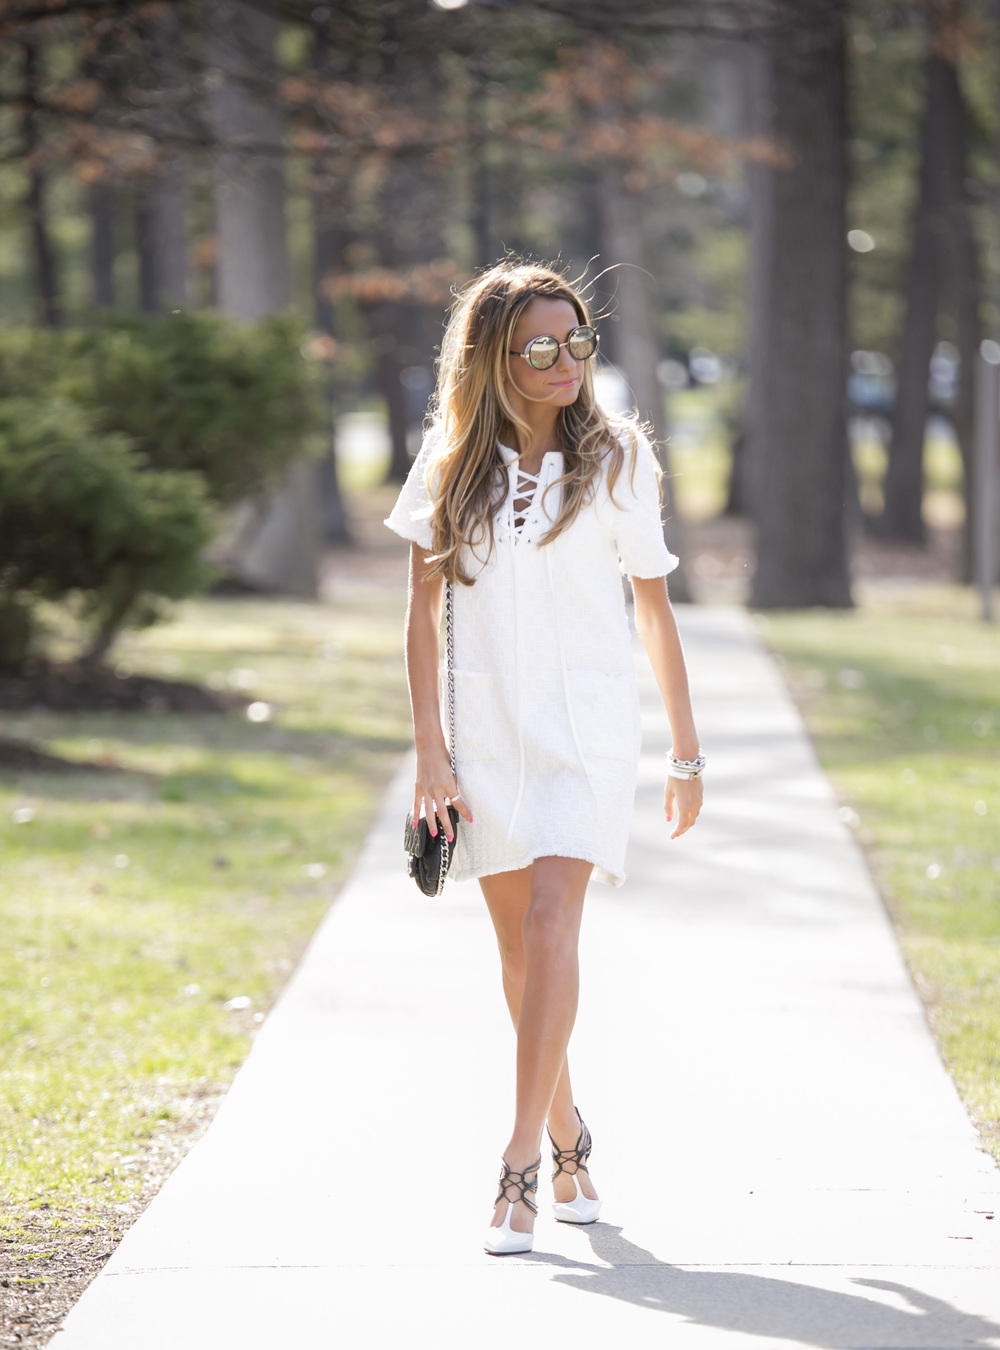 The little white dress worn with Christian Louboutin pumps